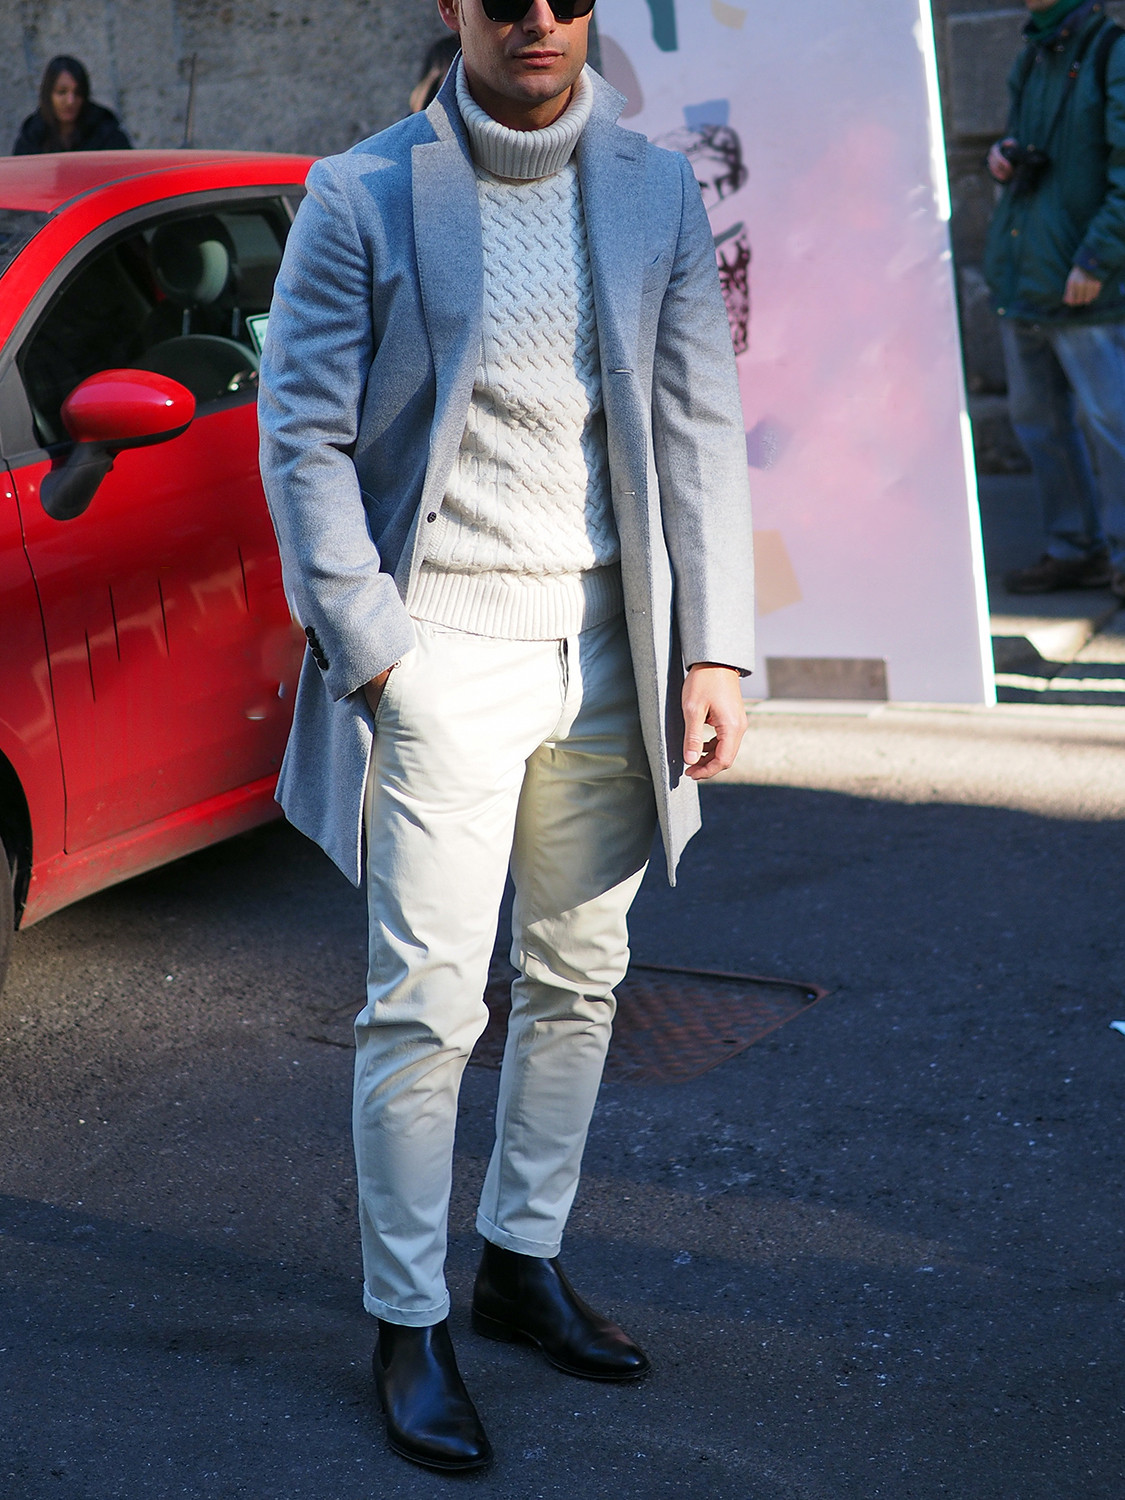 Men's outfit idea for 2021 with grey single-breasted overcoat, white chinos, black chelsea boots. Suitable for autumn and winter.